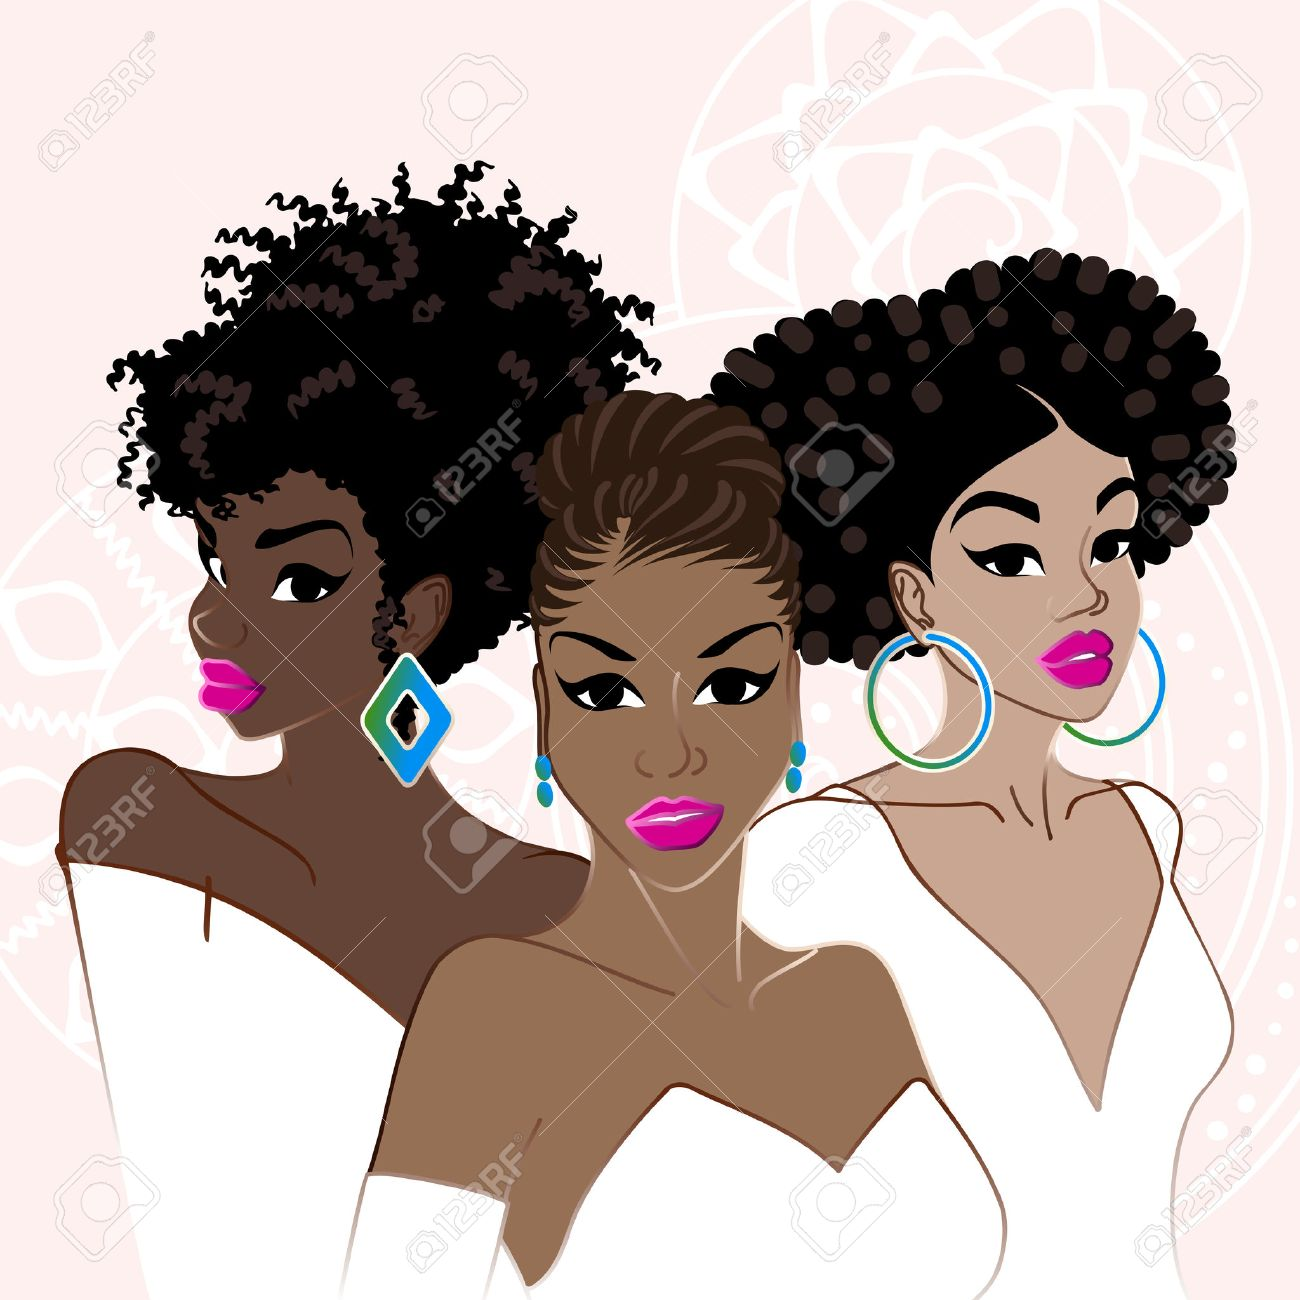 6,651 Afro Stock Vector Illustration And Royalty Free Afro Clipart